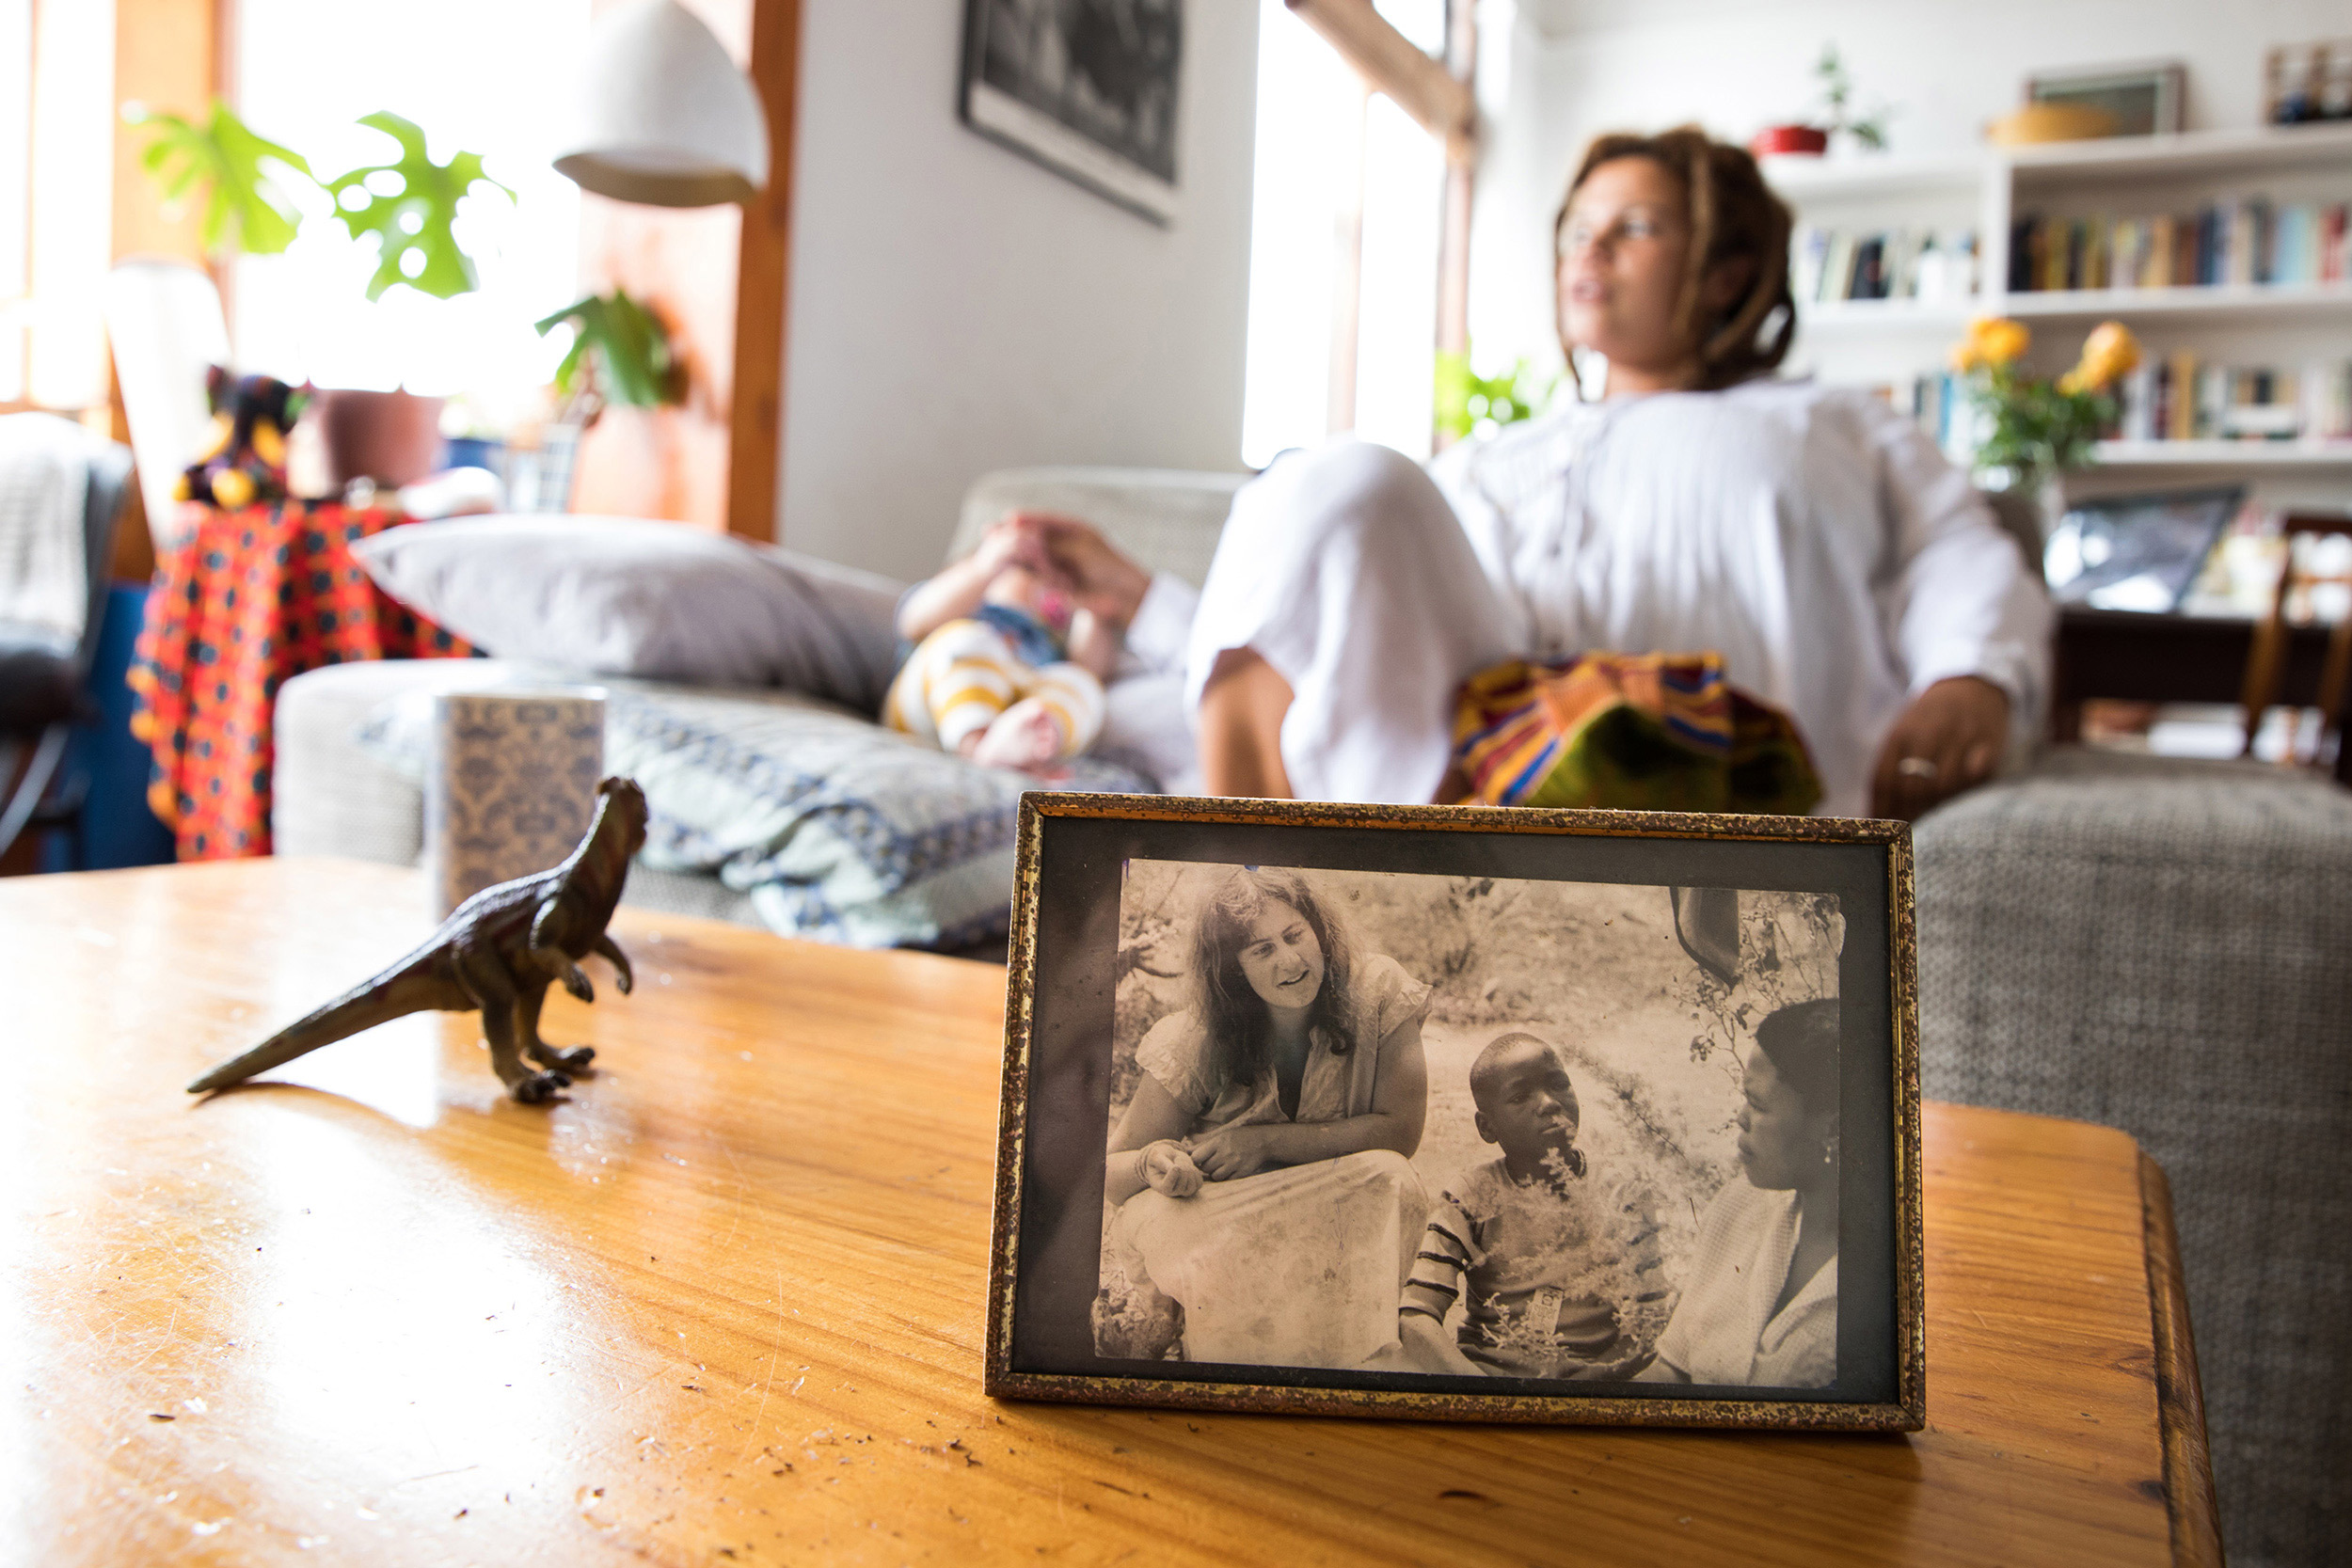 25 November 2018: Clare Stewart's daughter, Puleng, at home in Cape Town with a picture of her mother on the coffee table.